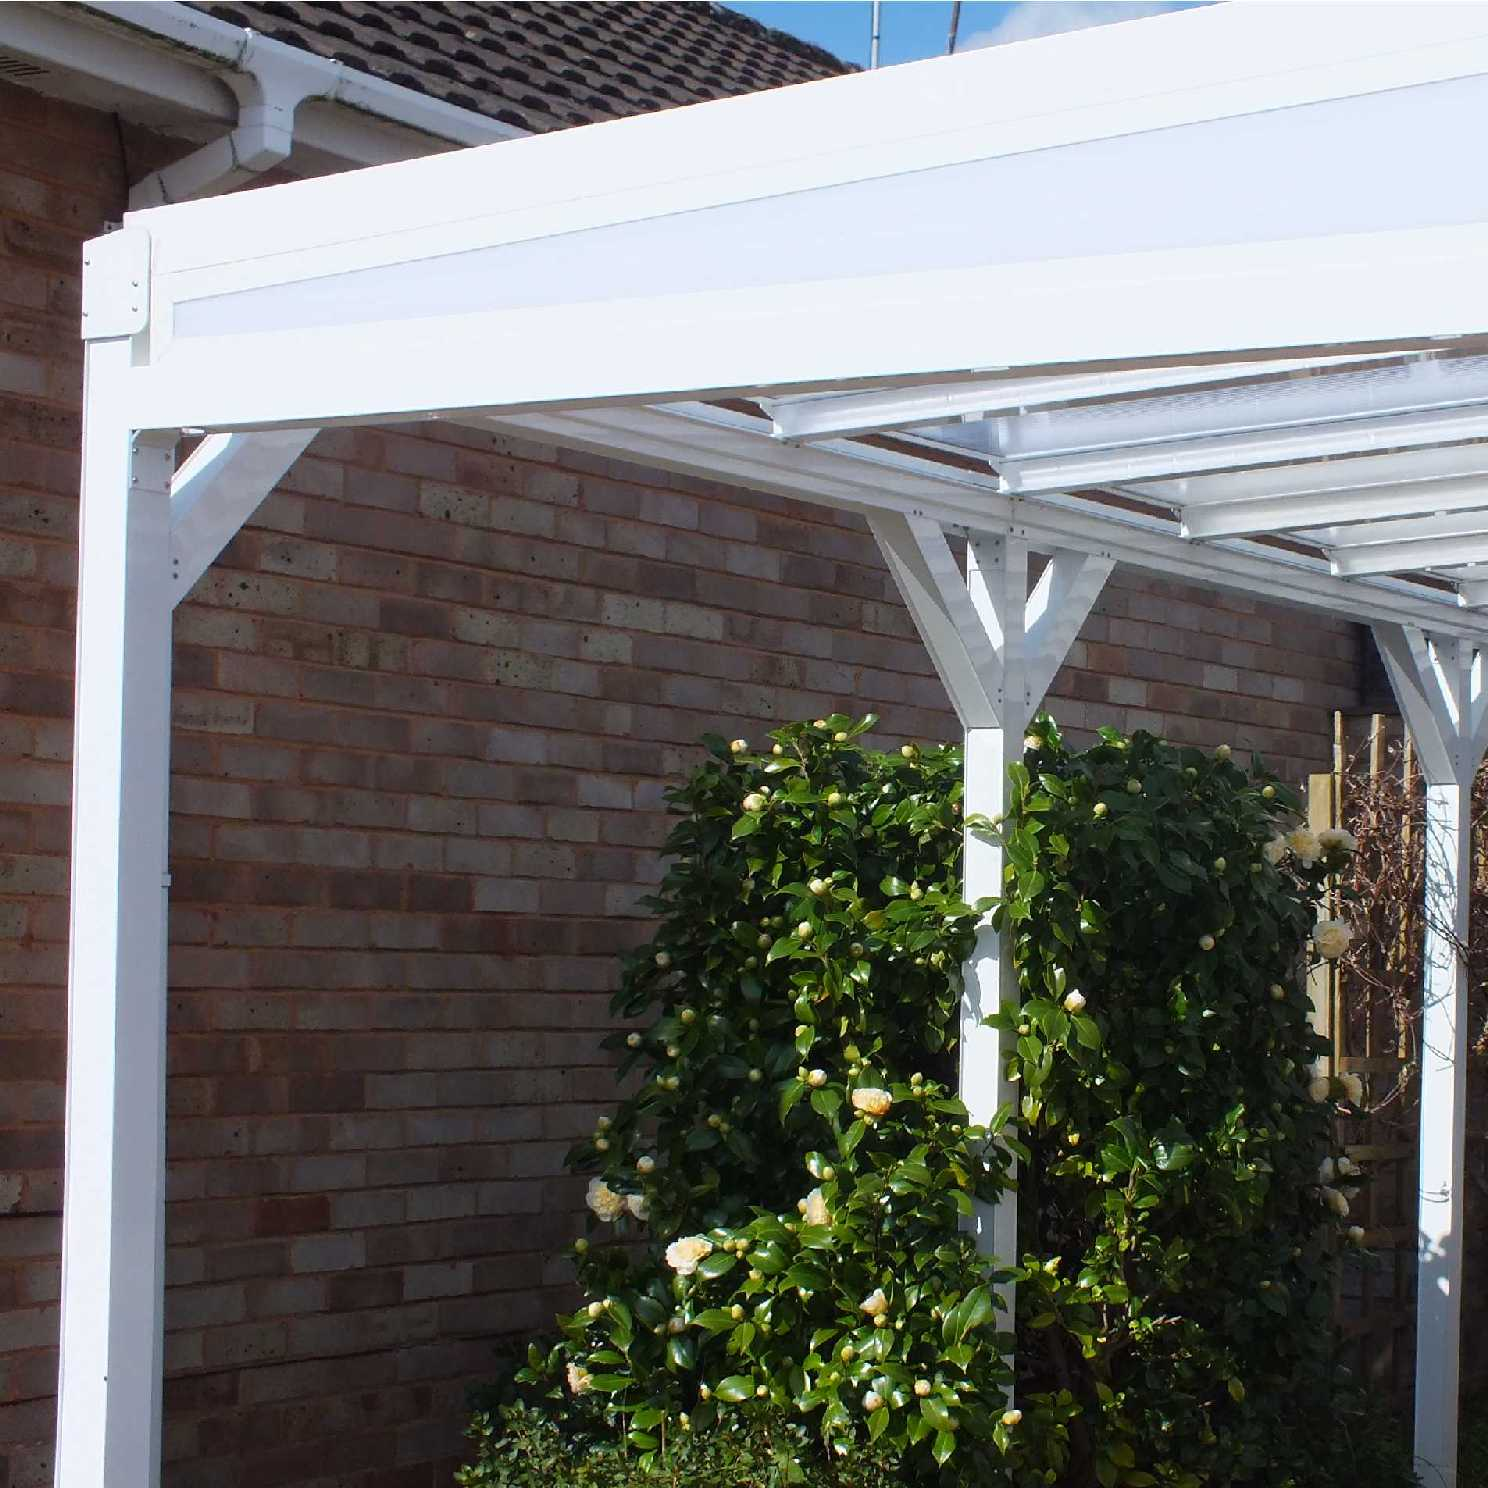 Omega Smart Lean-To Canopy with 16mm Polycarbonate Glazing - 5.2m (W) x 1.5m (P), (3) Supporting Posts from Omega Build